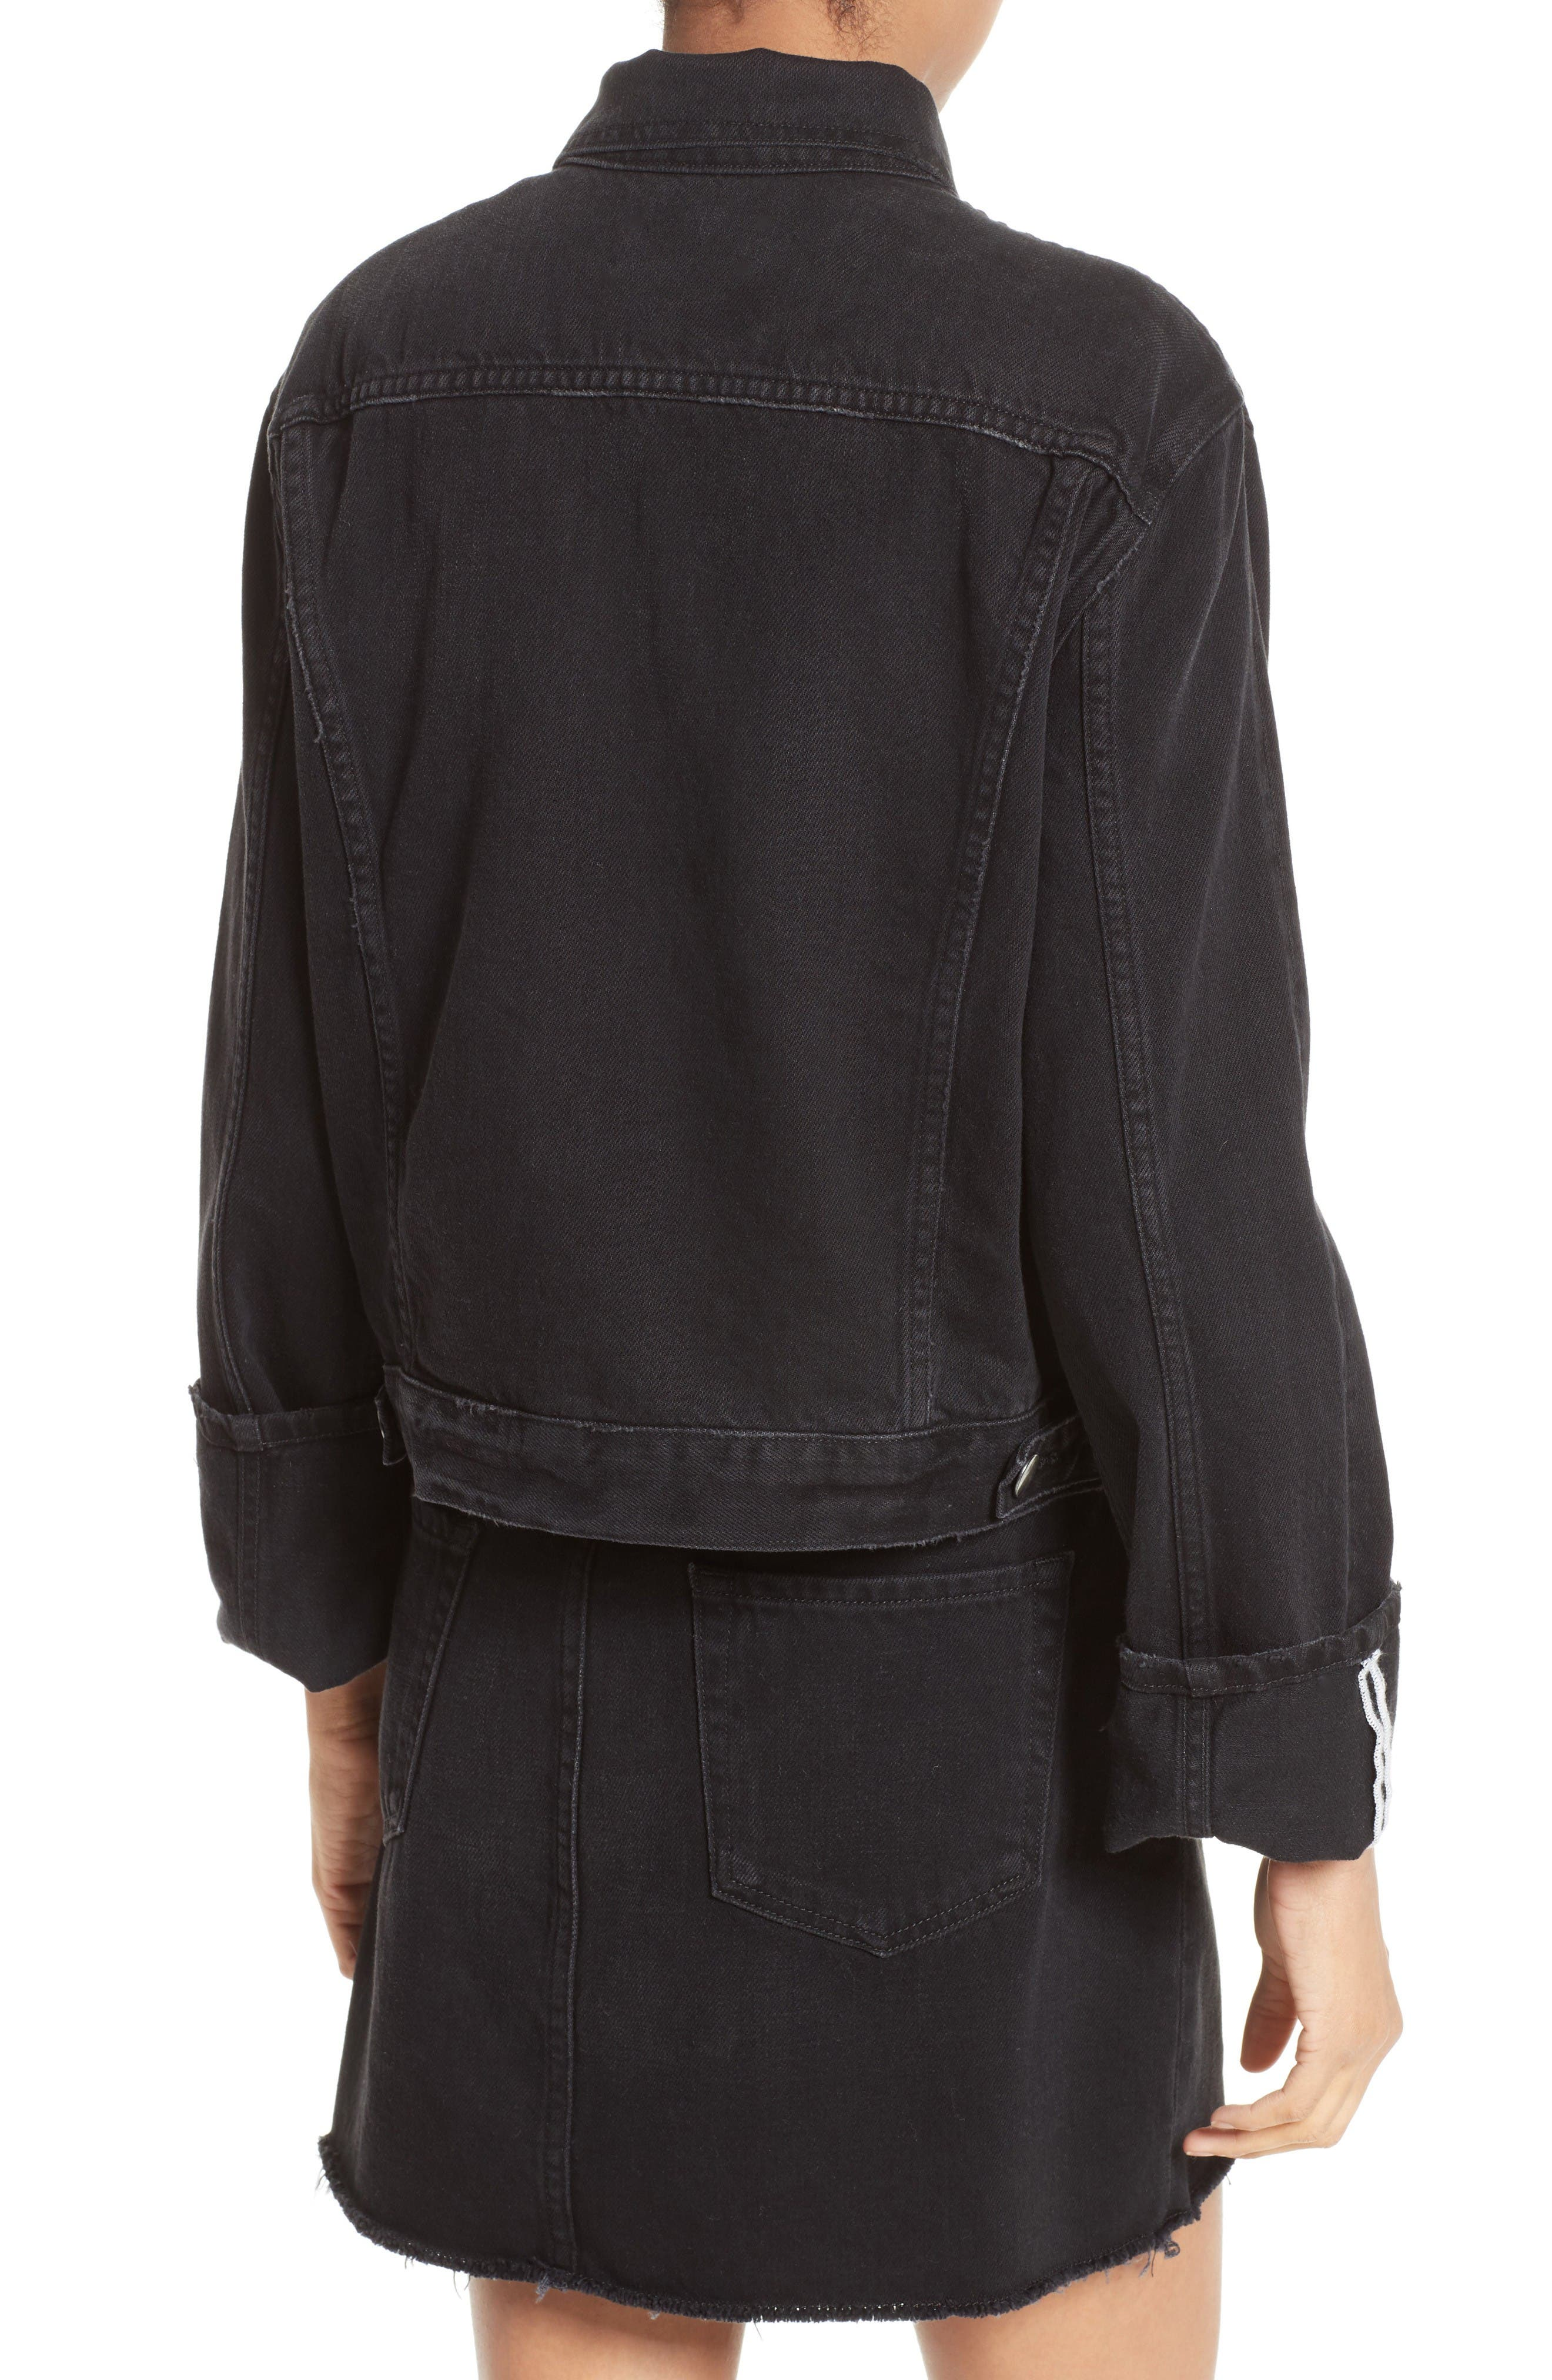 Le Cuffed Denim Jacket,                             Alternate thumbnail 3, color,                             Black Knight